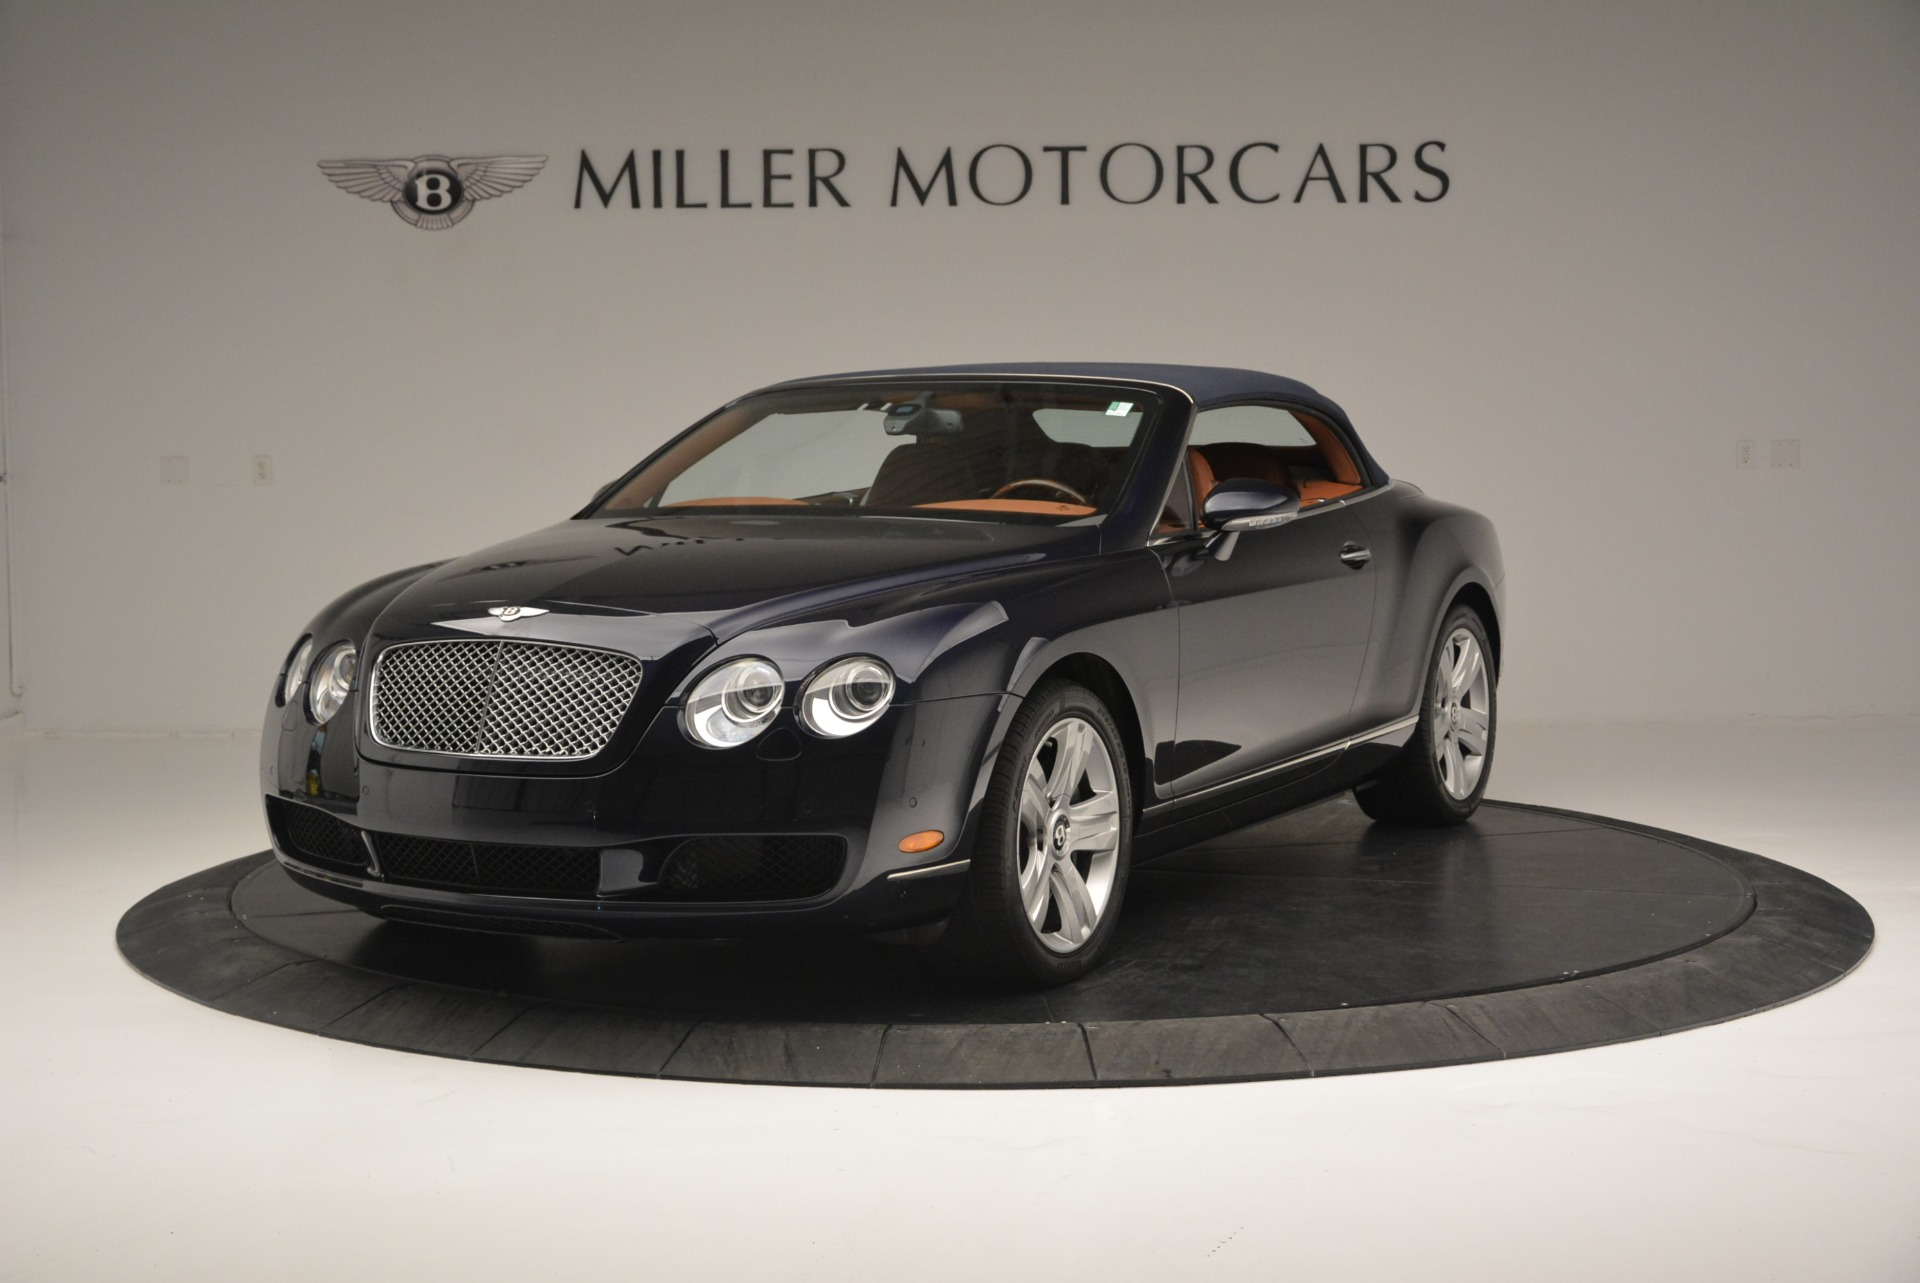 Used 2008 Bentley Continental GTC GT For Sale In Westport, CT 2307_p11